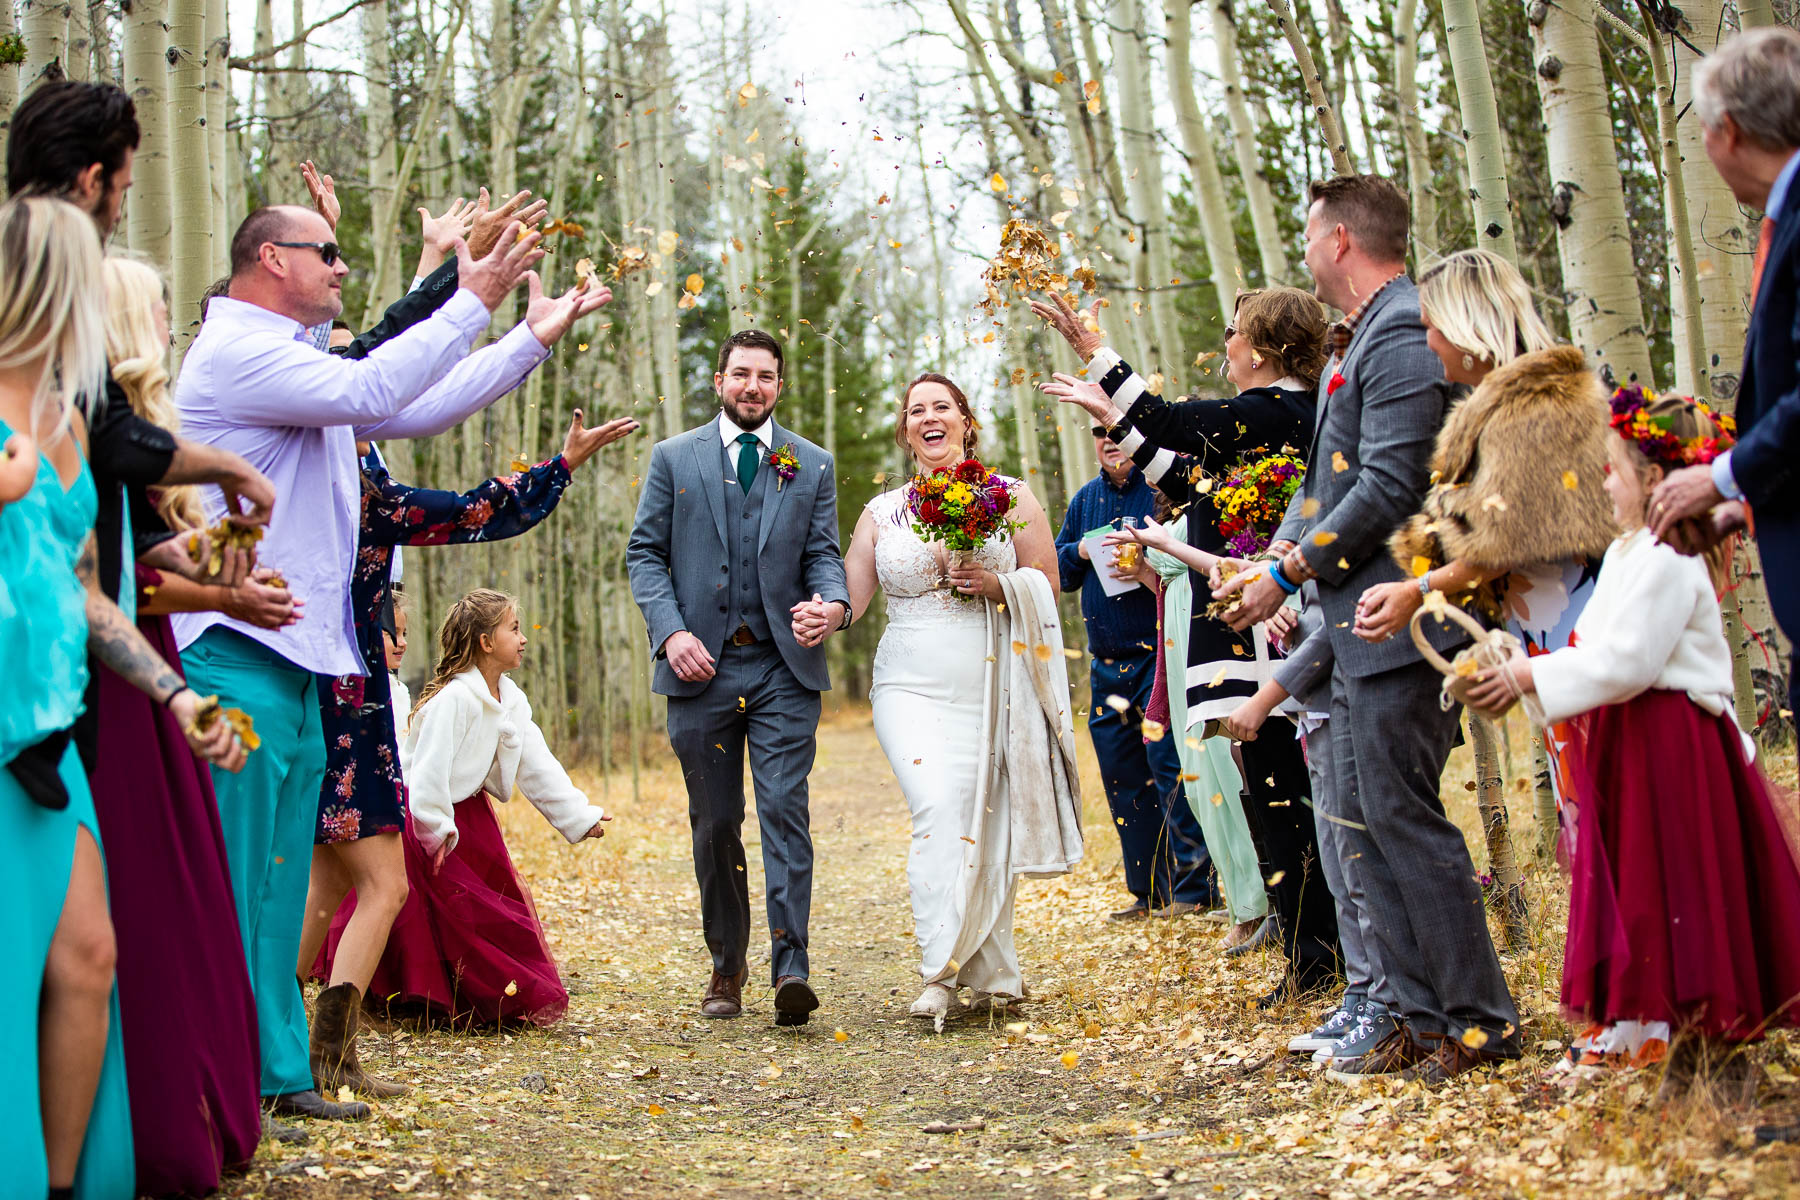 Colorado Mountain Wedding Photo Session | the couple's friends and family members scooped up fallen aspen leaves and tossed them